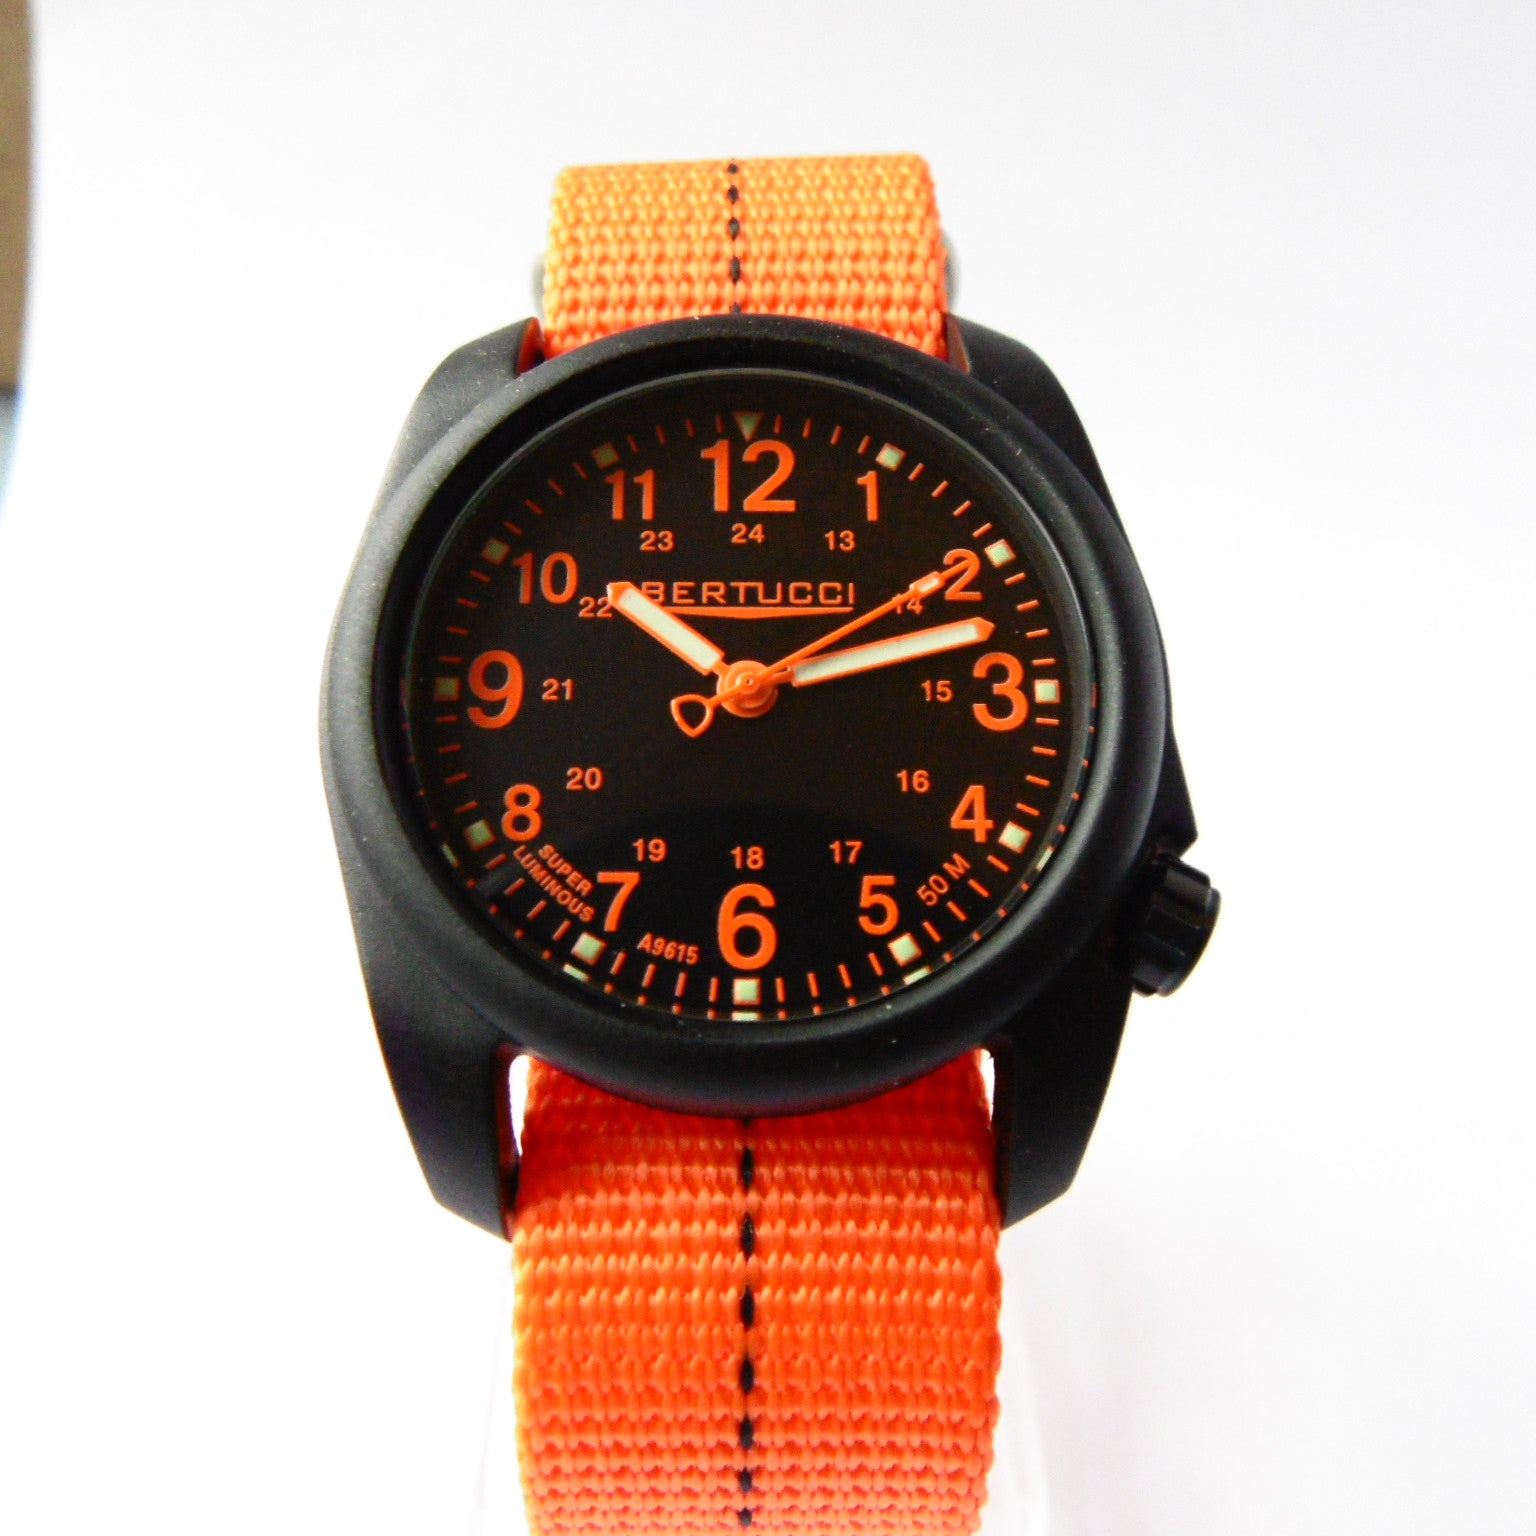 Bertucci DX3 Plus Field Resin Watch (Dash-Striped Orange Nylon Strap) 11042 - Watchfinder General - UK suppliers of Russian Vostok Parnis Watches MWC G10  - 3